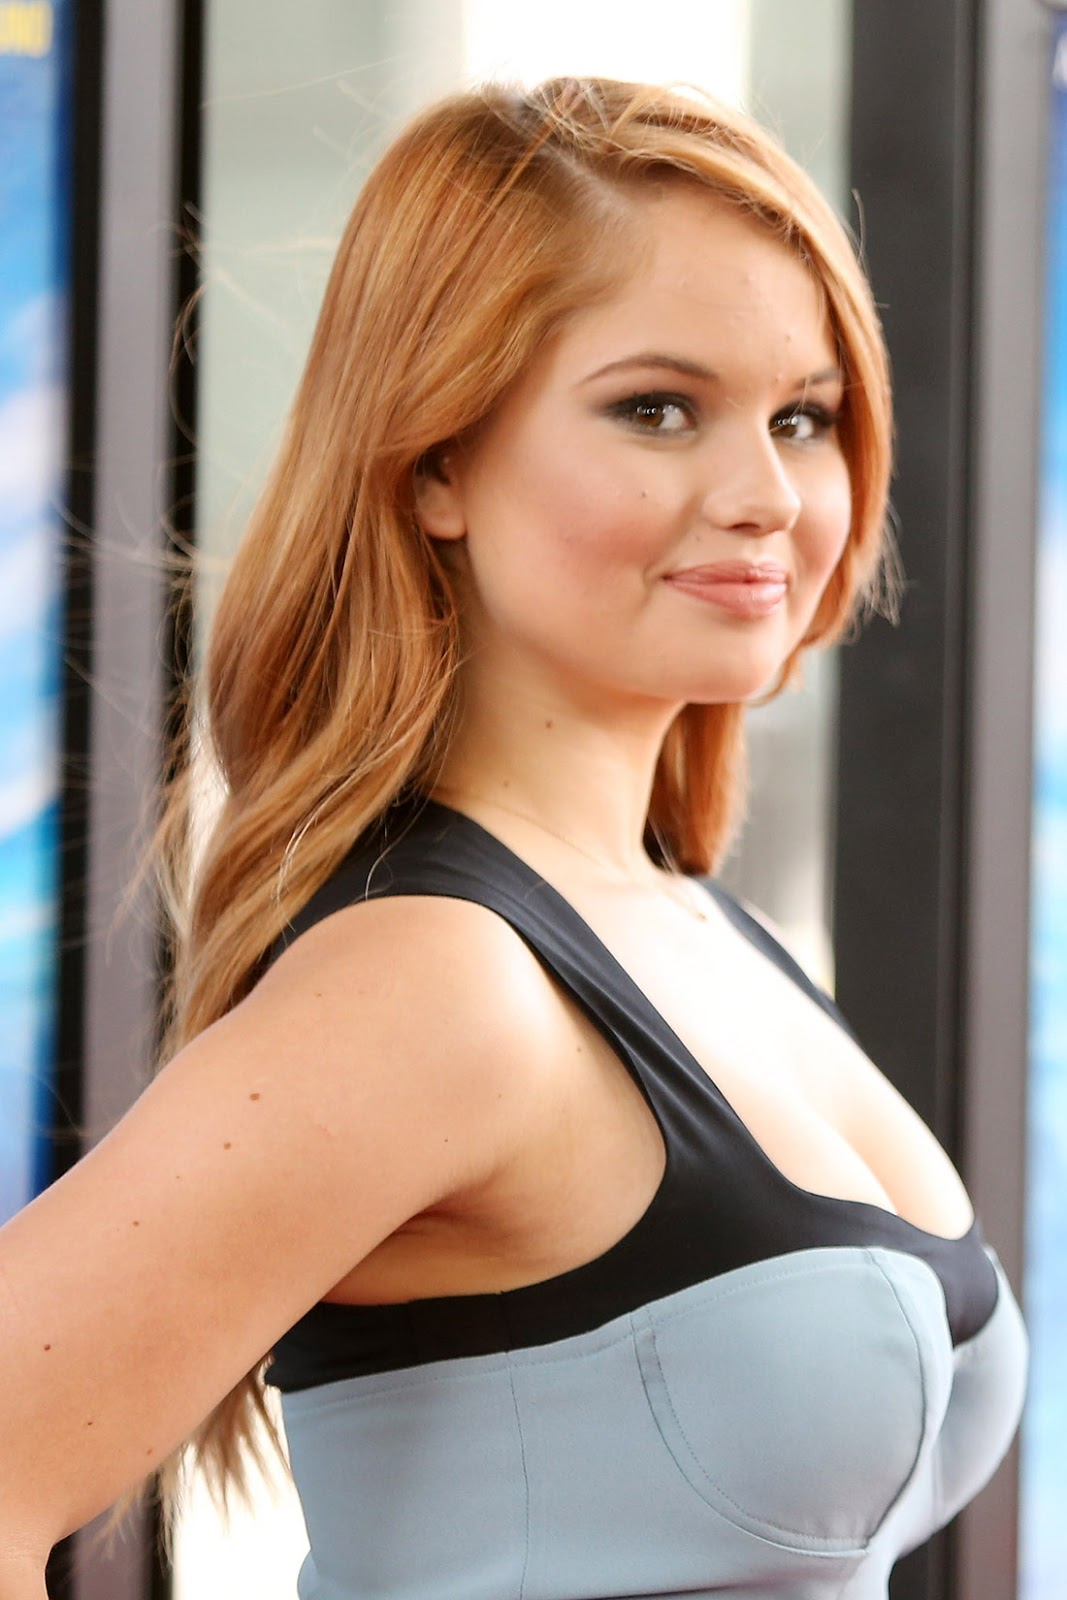 Debby Ryan hot pictures - HIGH RESOLUTION PICTURES